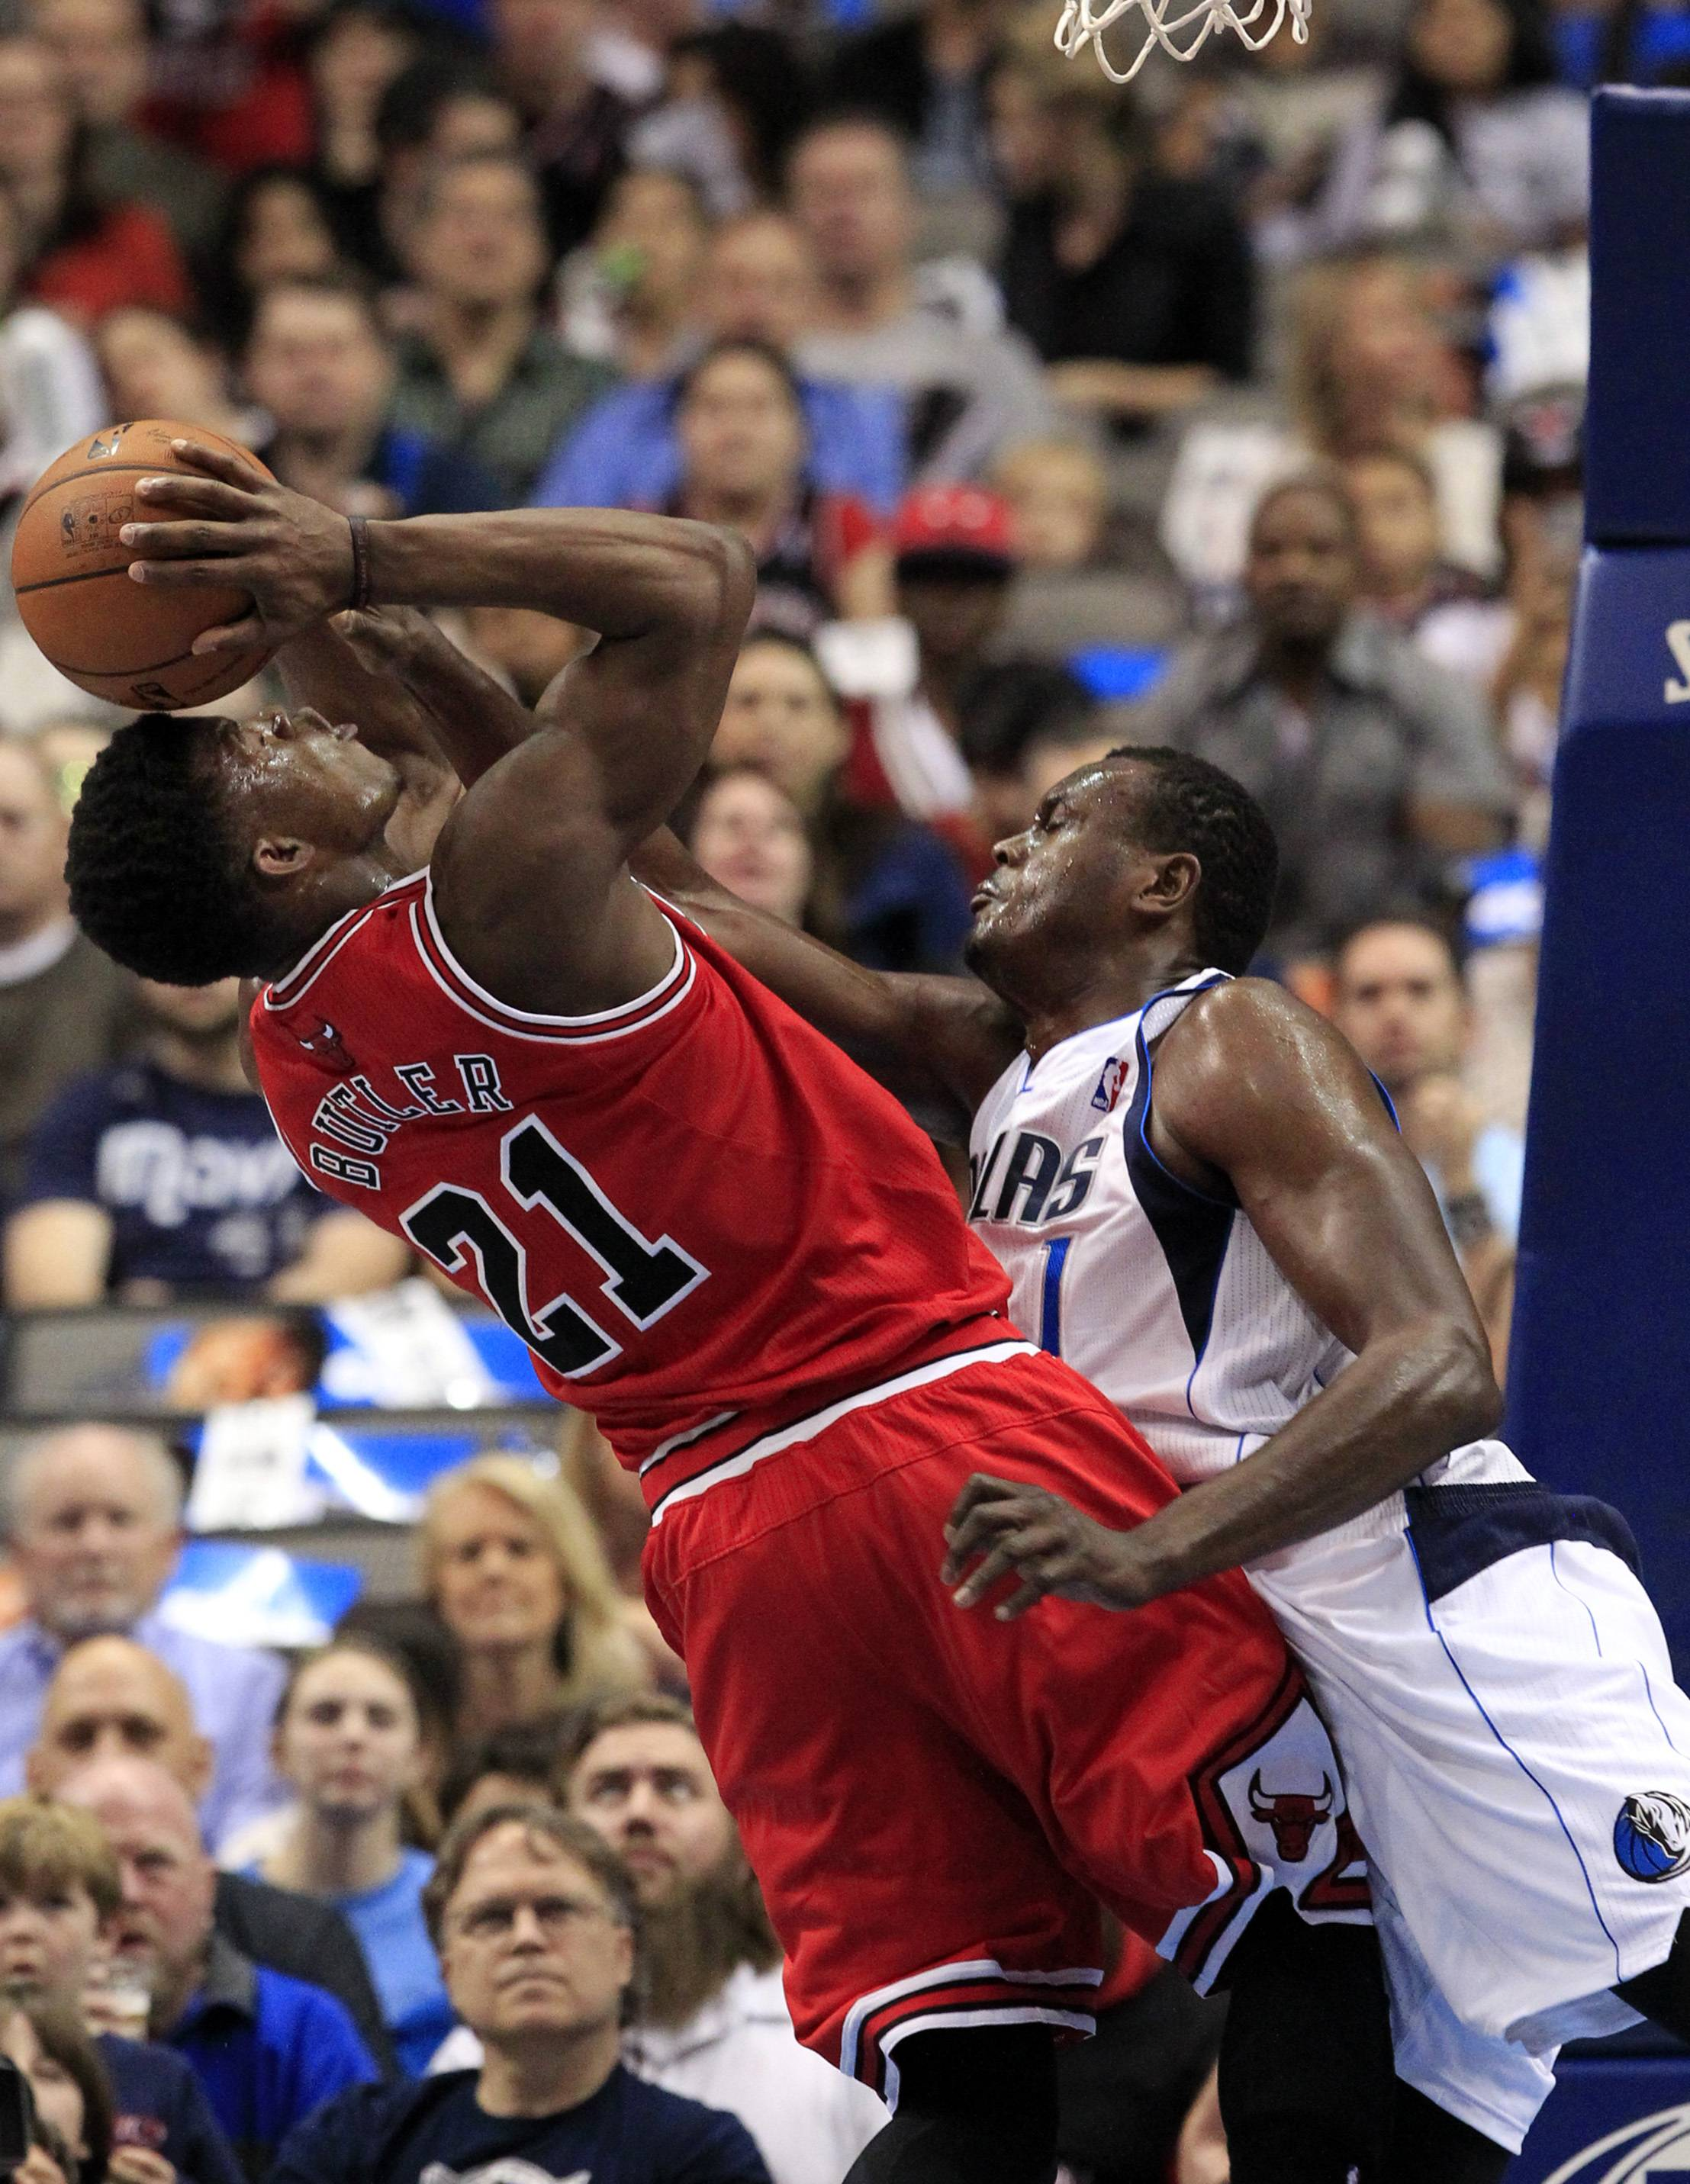 Chicago Bulls guard Jimmy Butler (21) is fouled by Dallas Mavericks center Samuel Dalembert (1), of Haiti, during the first half of an NBA basketball game on Friday, Feb. 28, 2014, in Dallas.